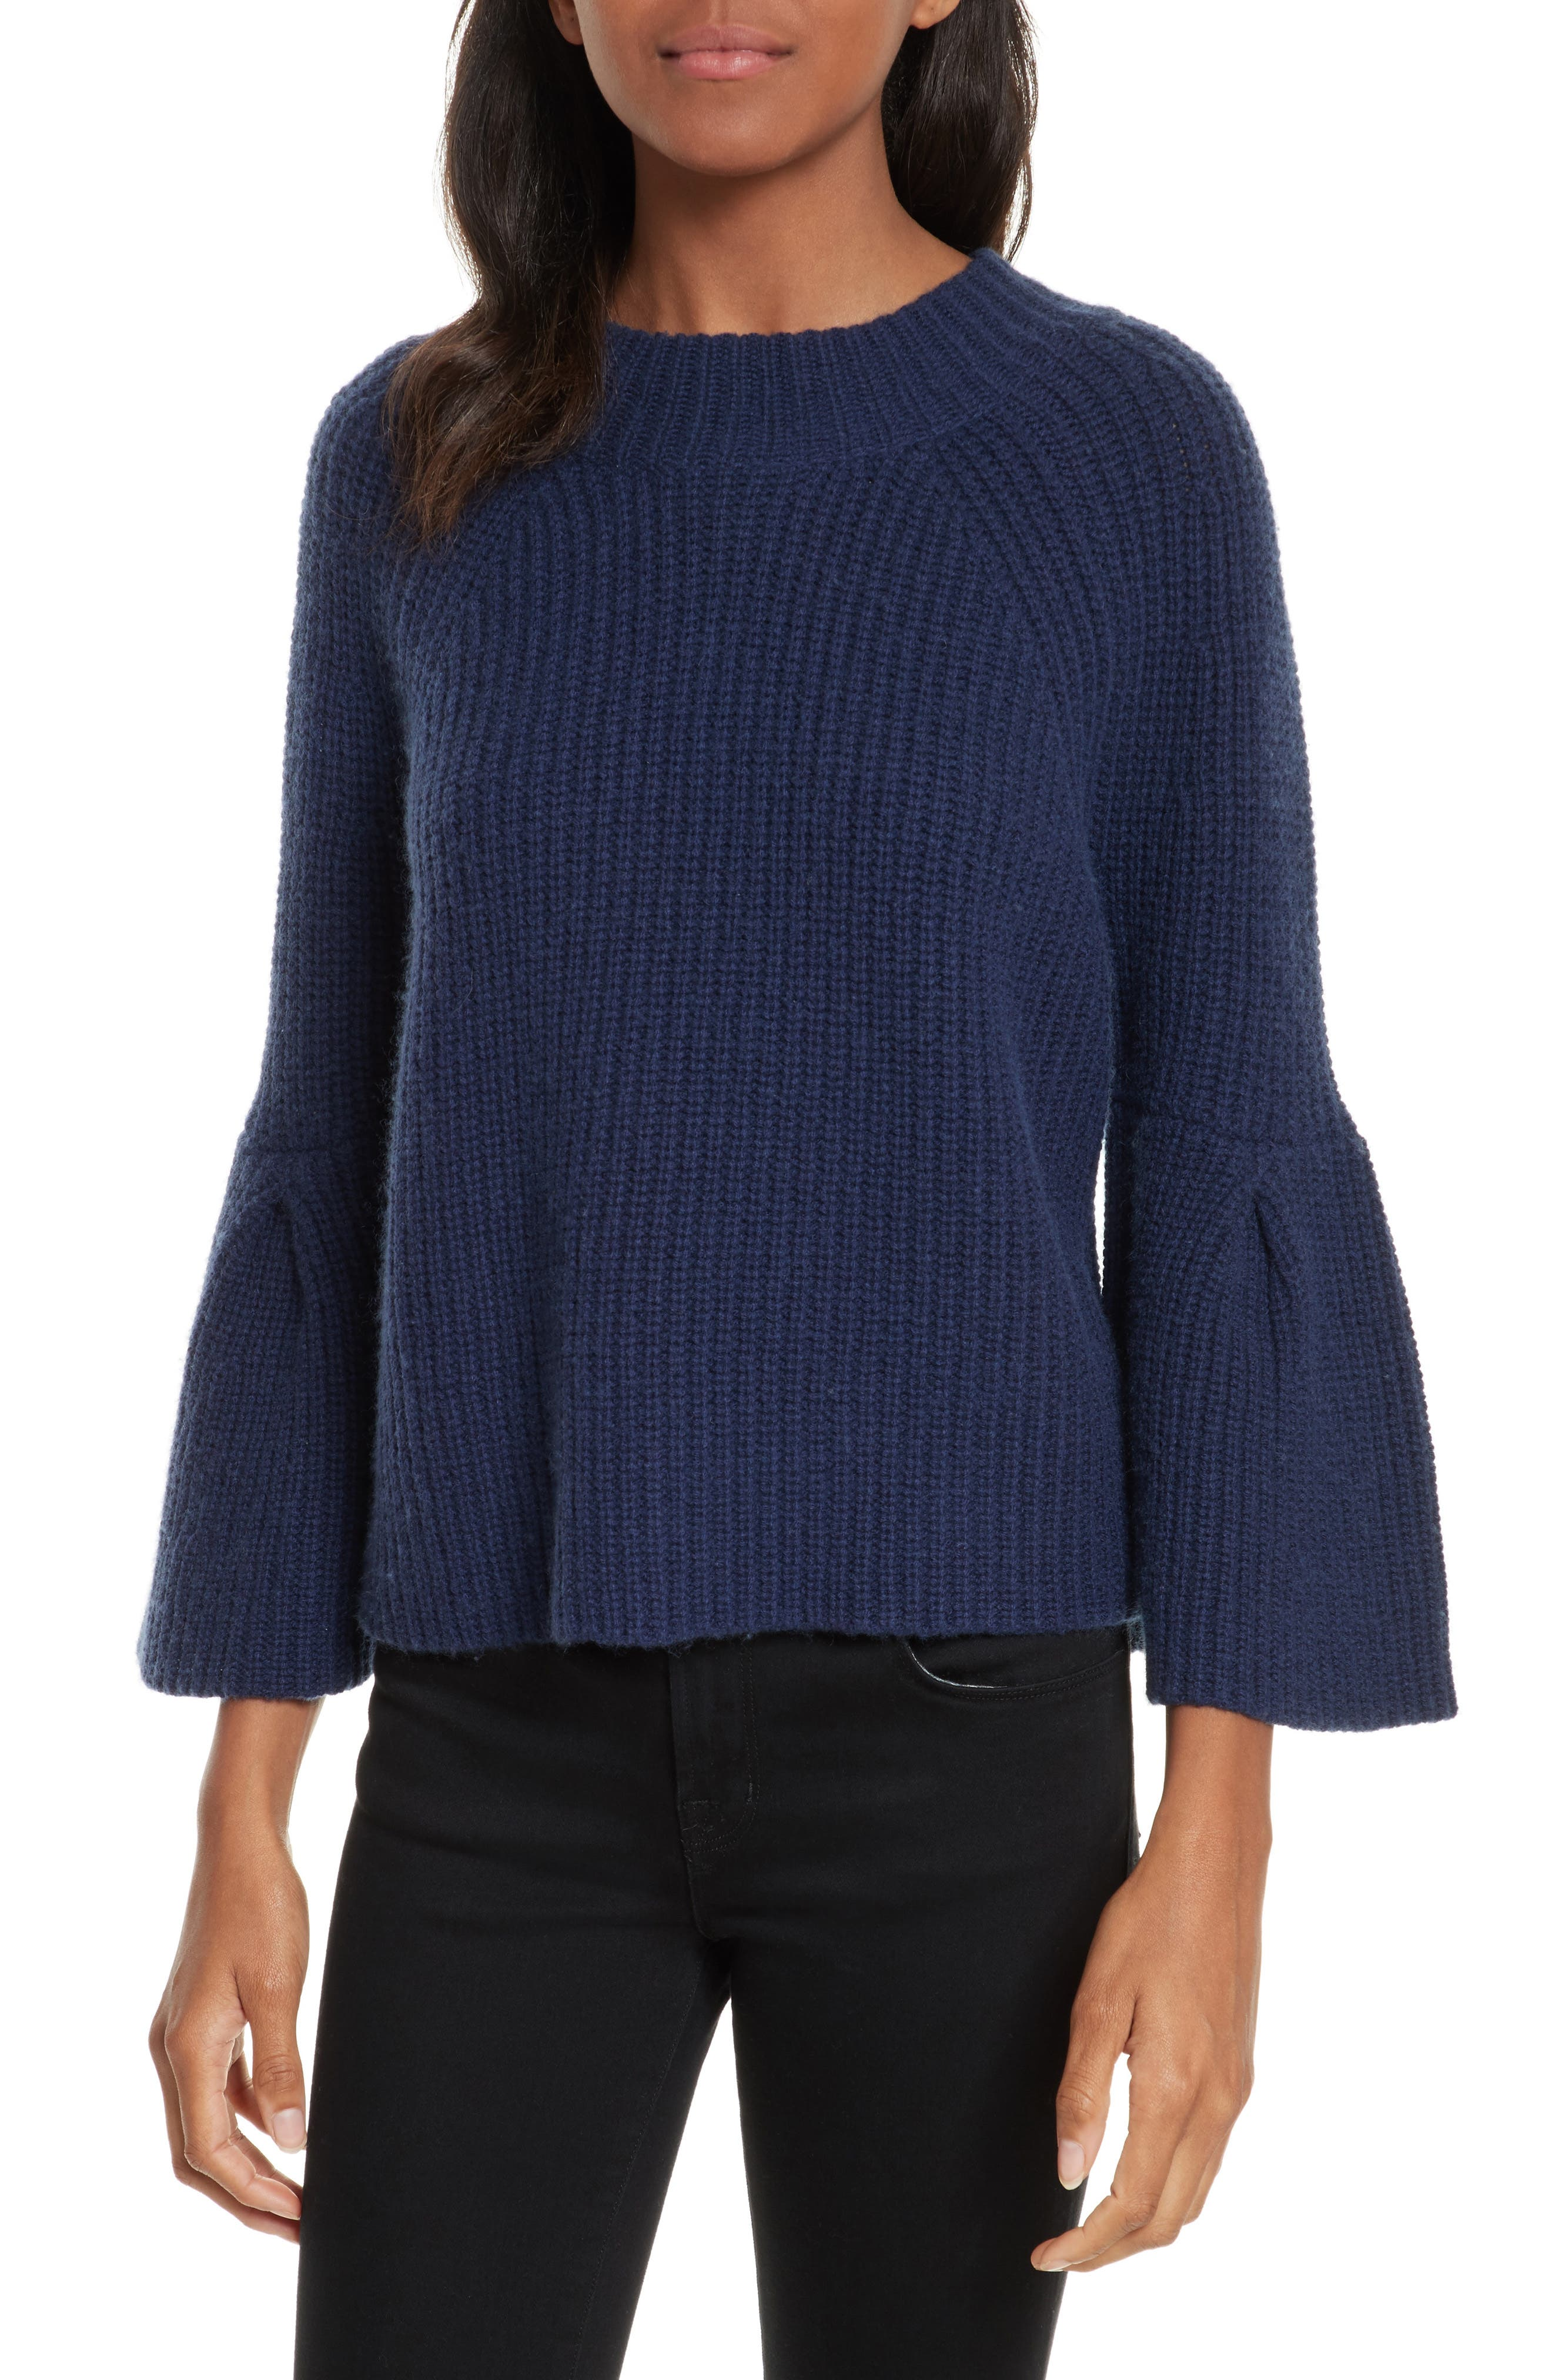 Joie Ingrit Wool & Cashmere Sweater